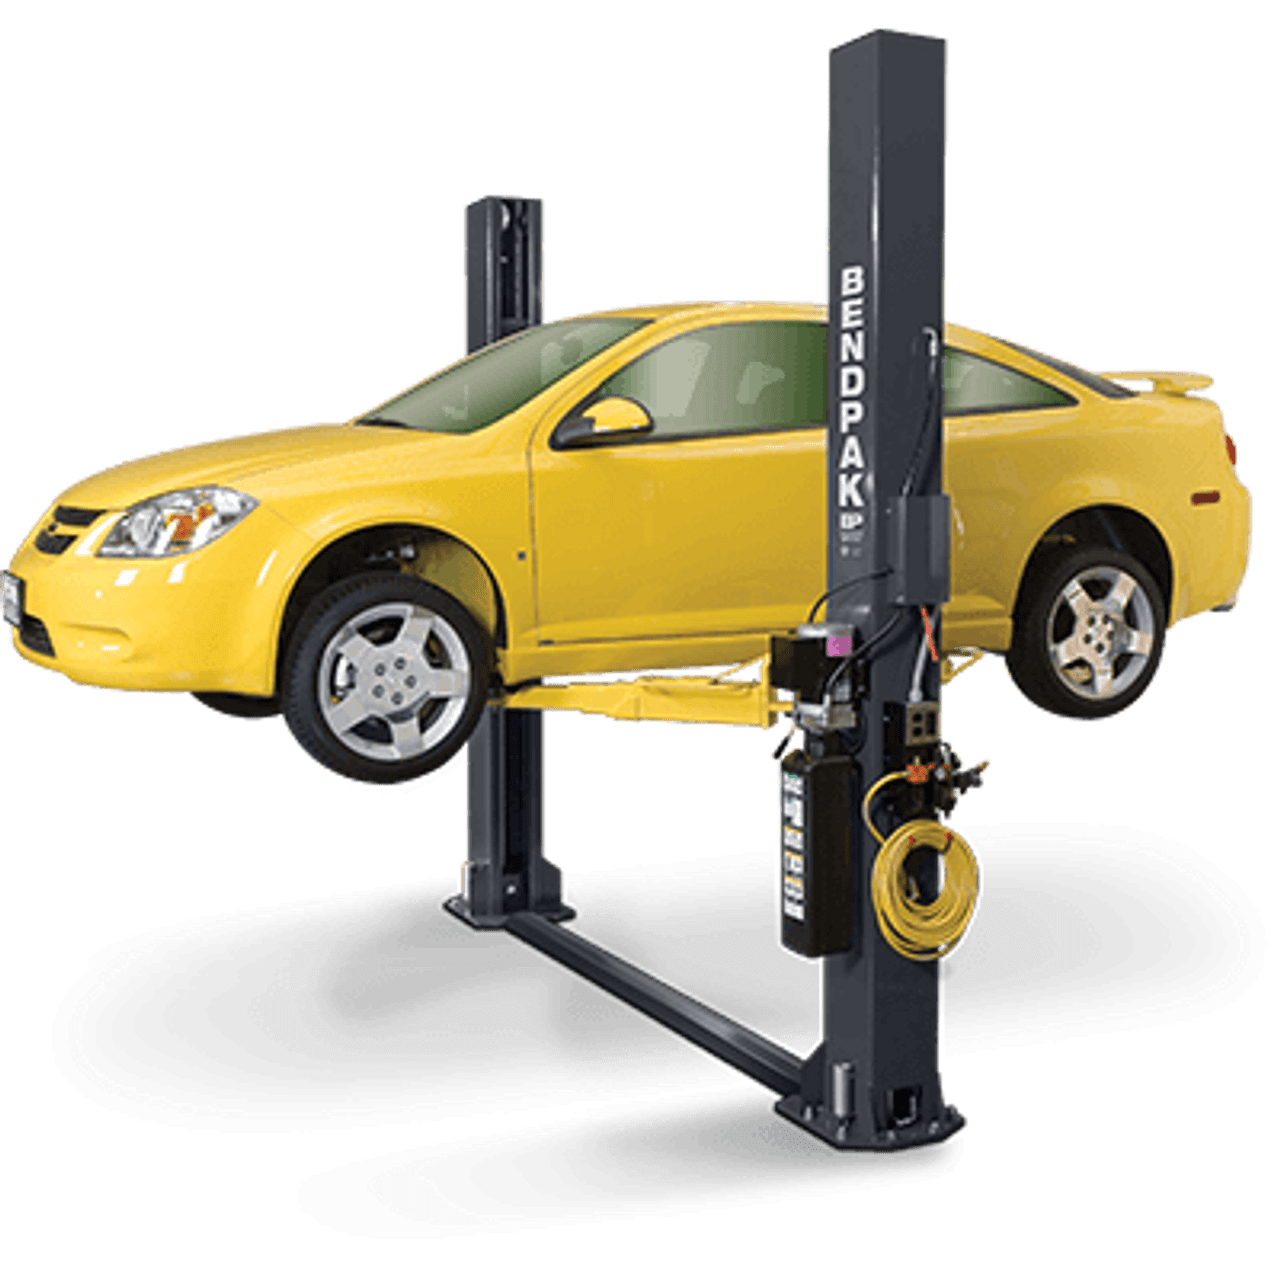 BENDPAK XPR-9S Dual-Width, 9,000 Lb. Capacity, Floor Plate, Chain-Over and Short Lift